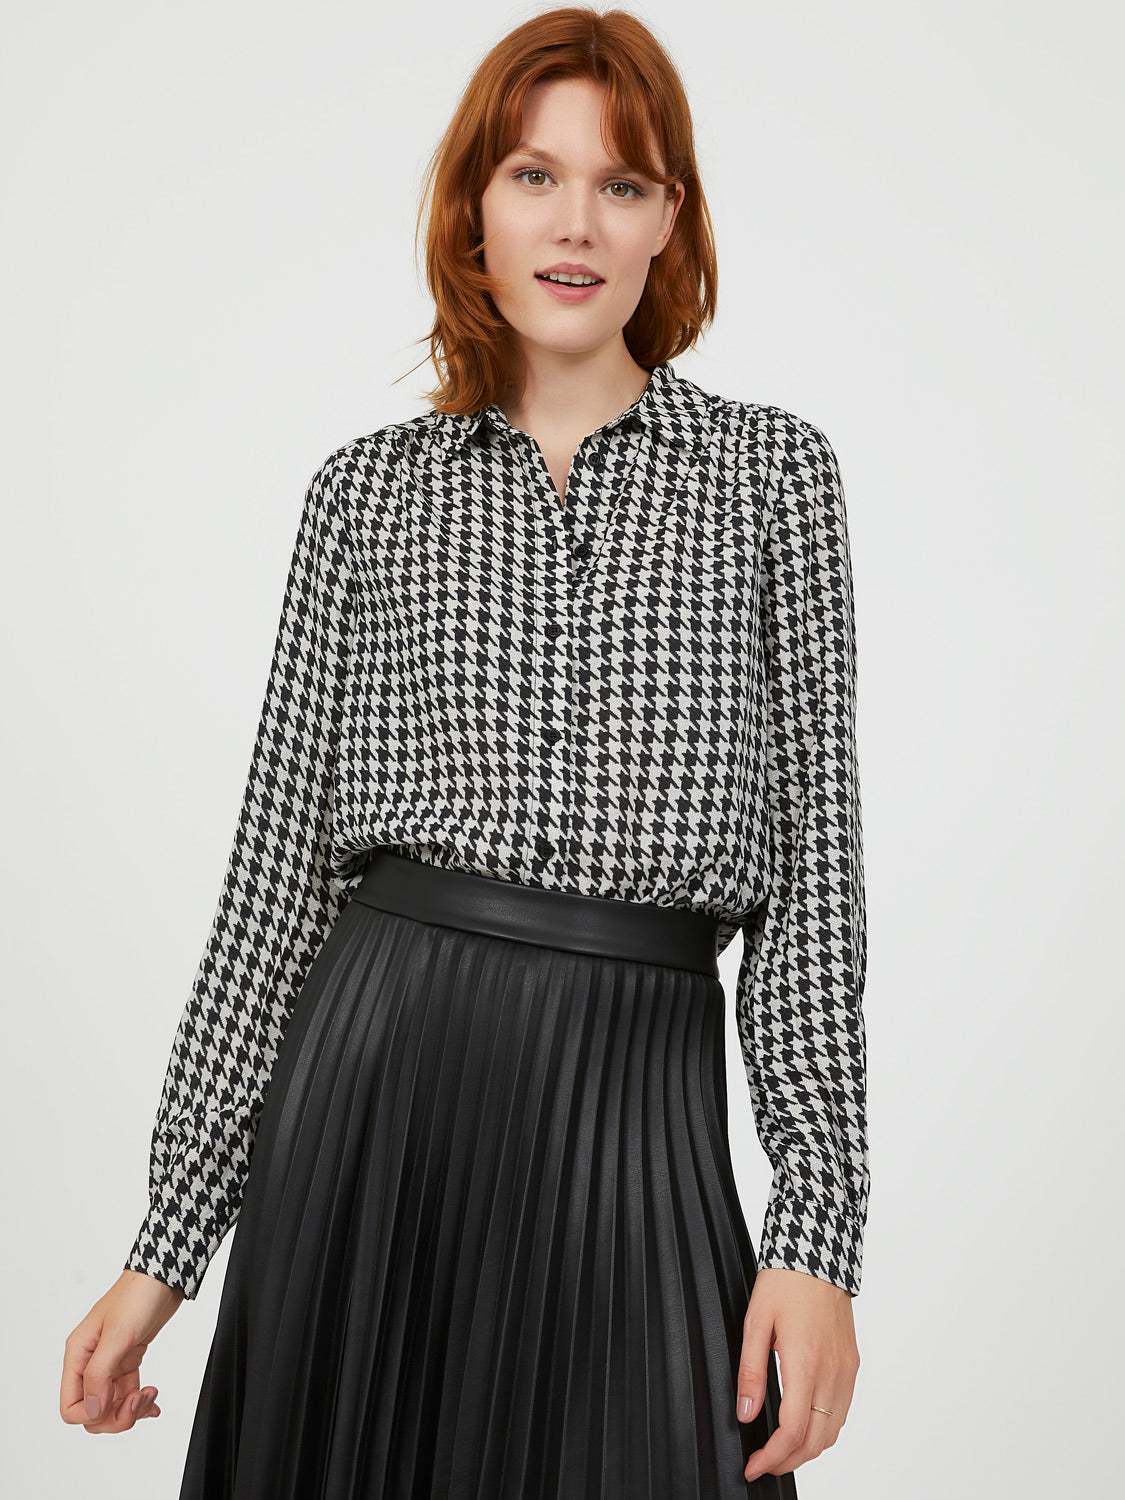 Houndstooth Chiffon Button-Down Blouse